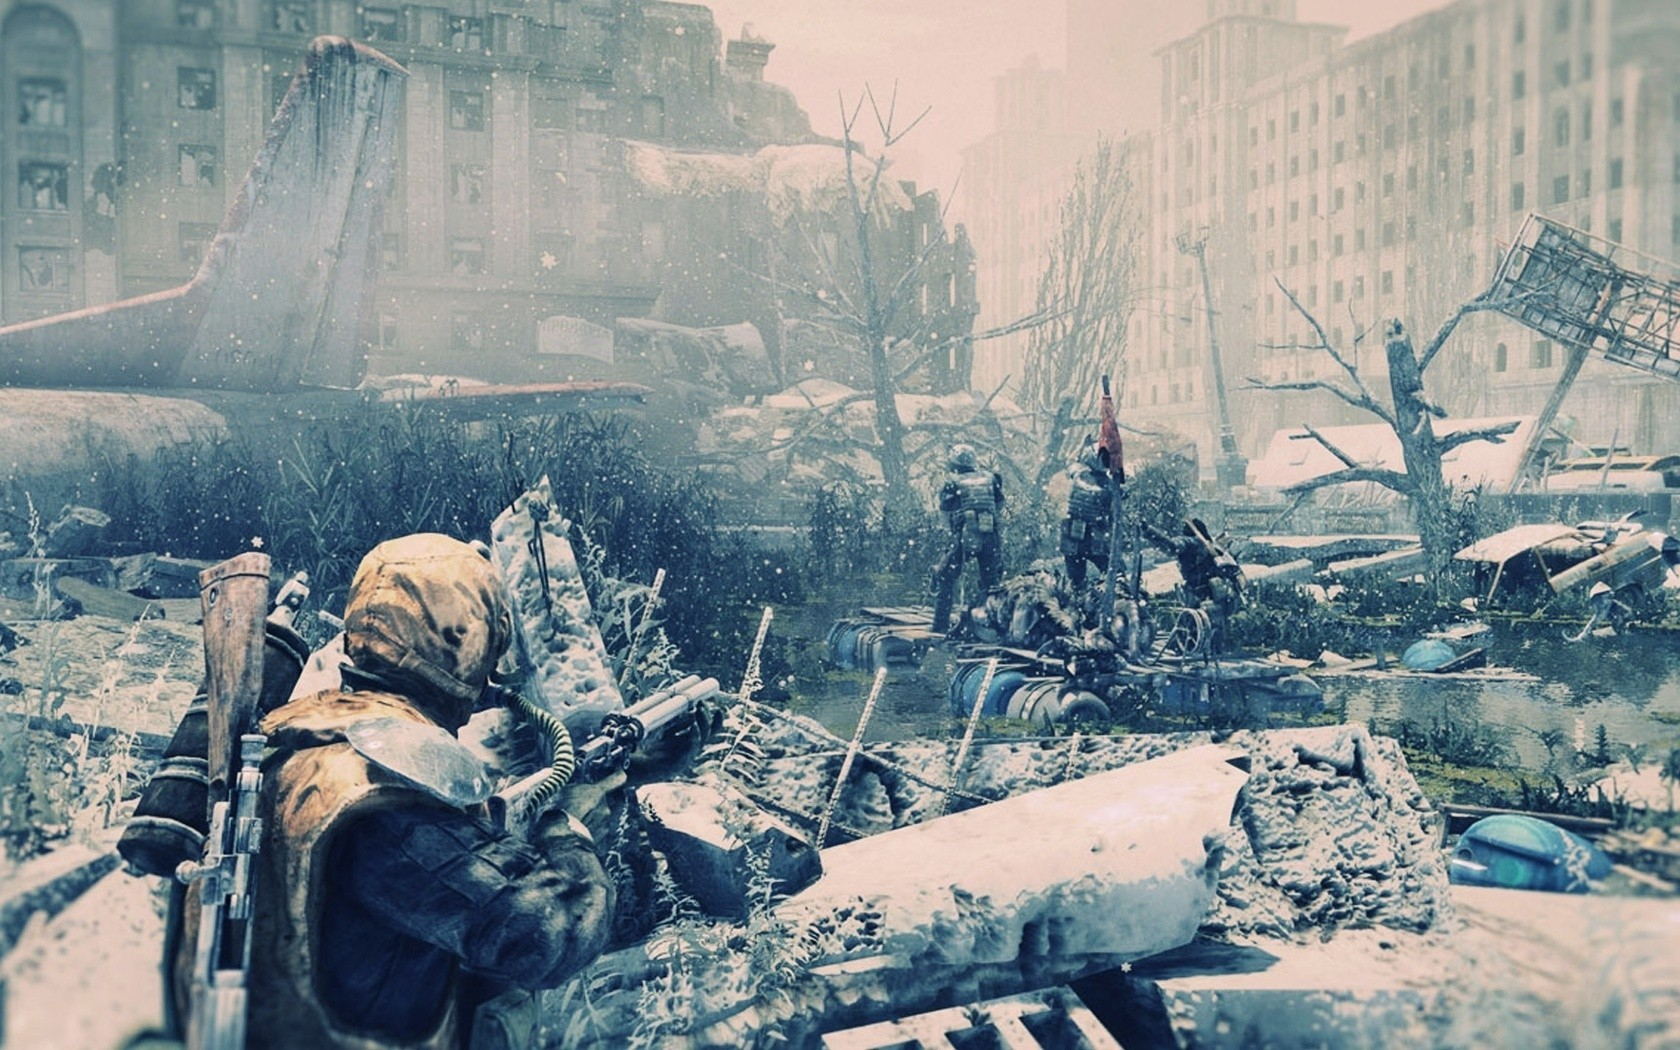 Video Games Guns Weapons Metro Last Light Wallpaper